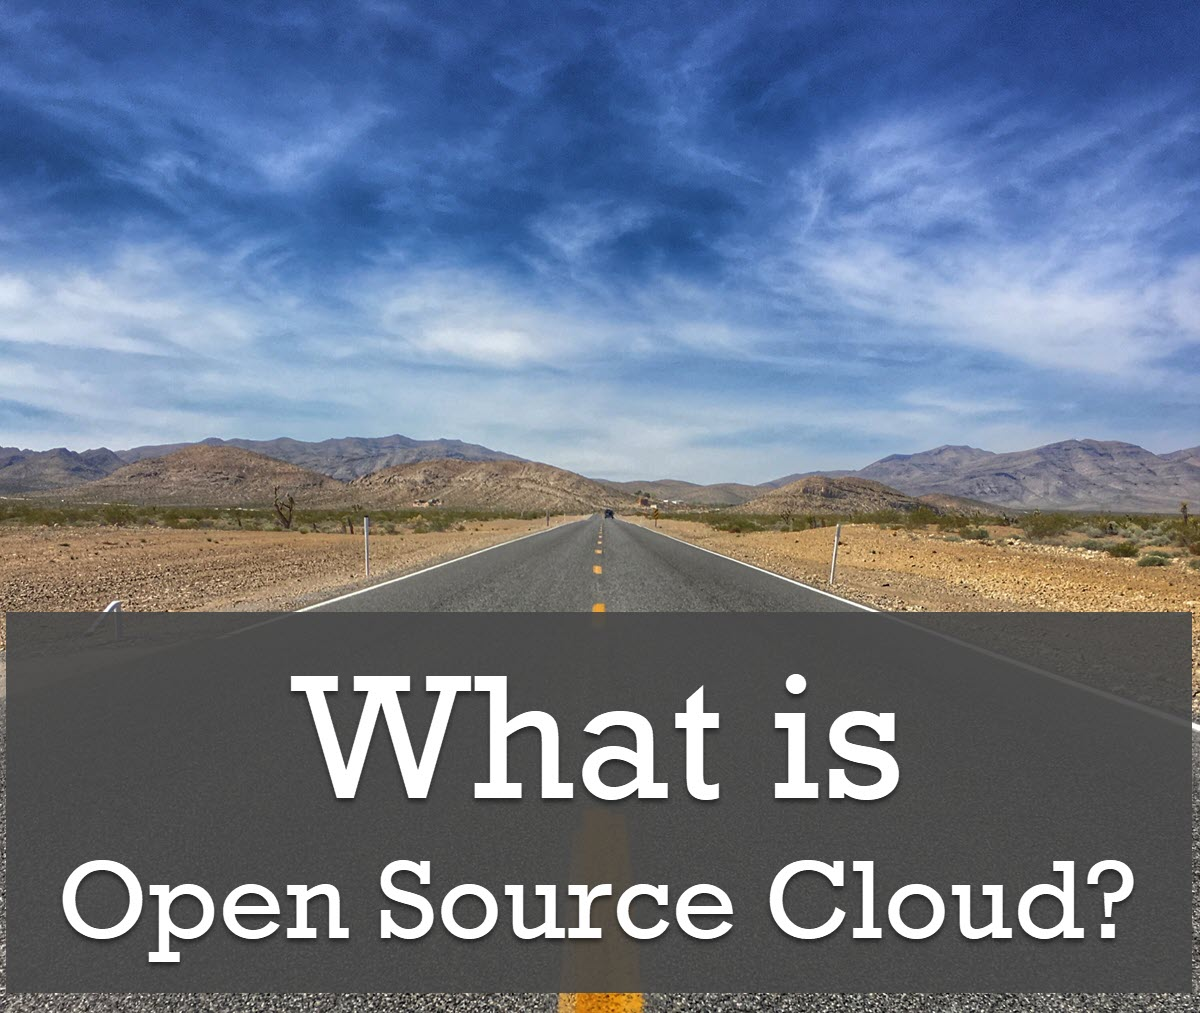 Source Cloud